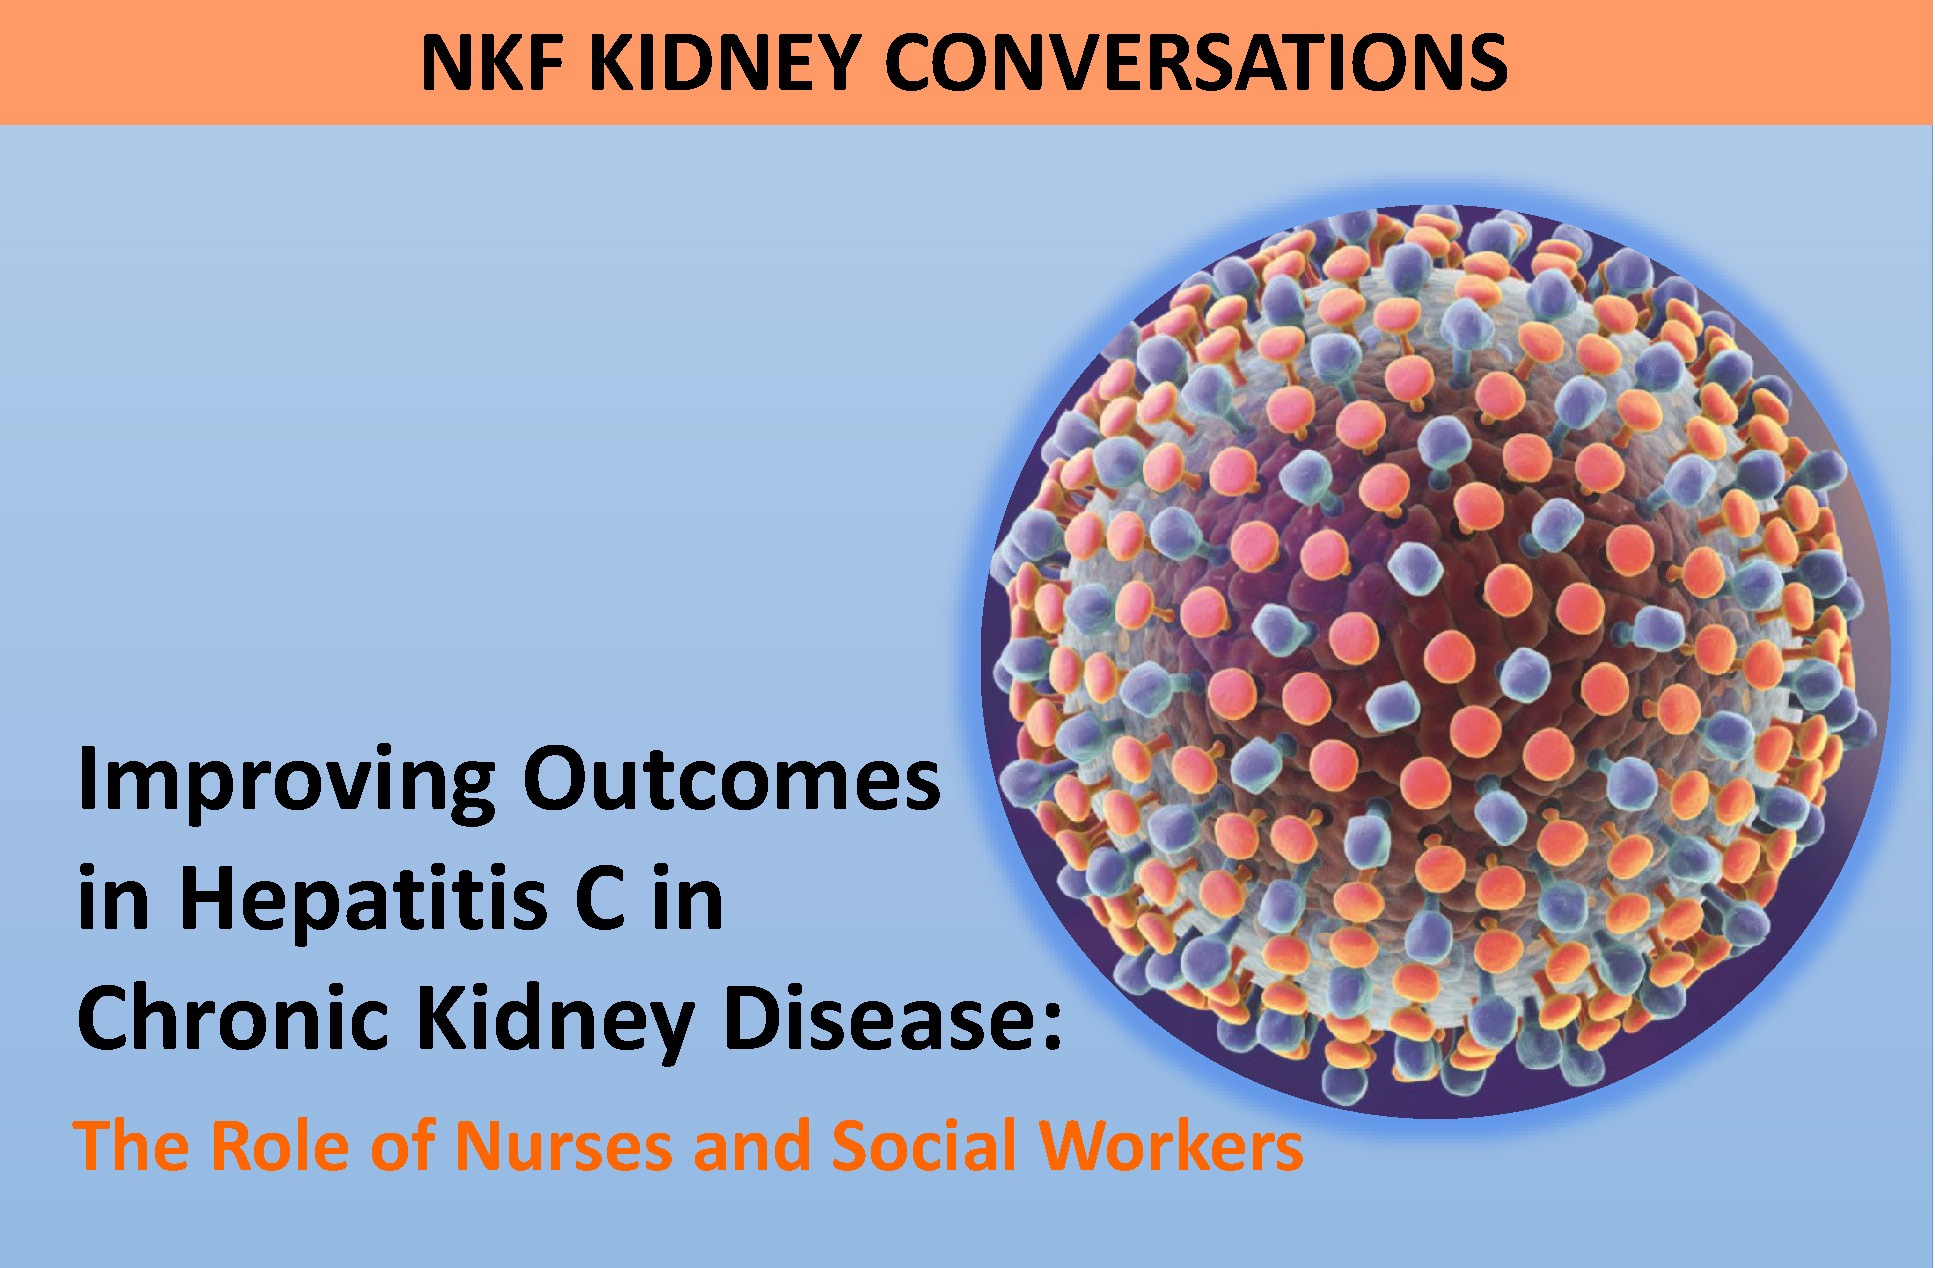 SOCIAL WORKERS | National Kidney Foundation